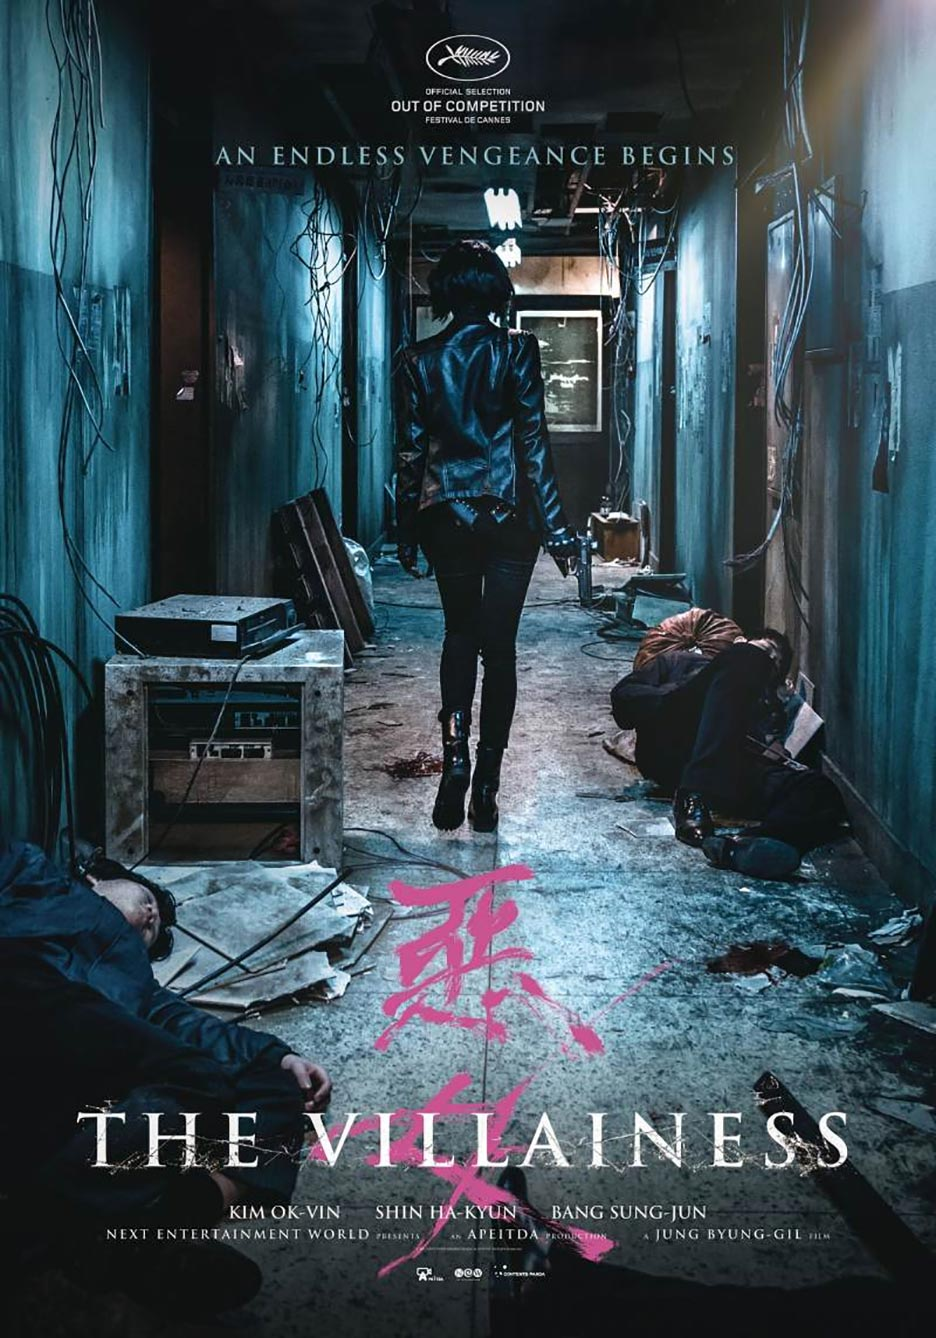 villaines poster